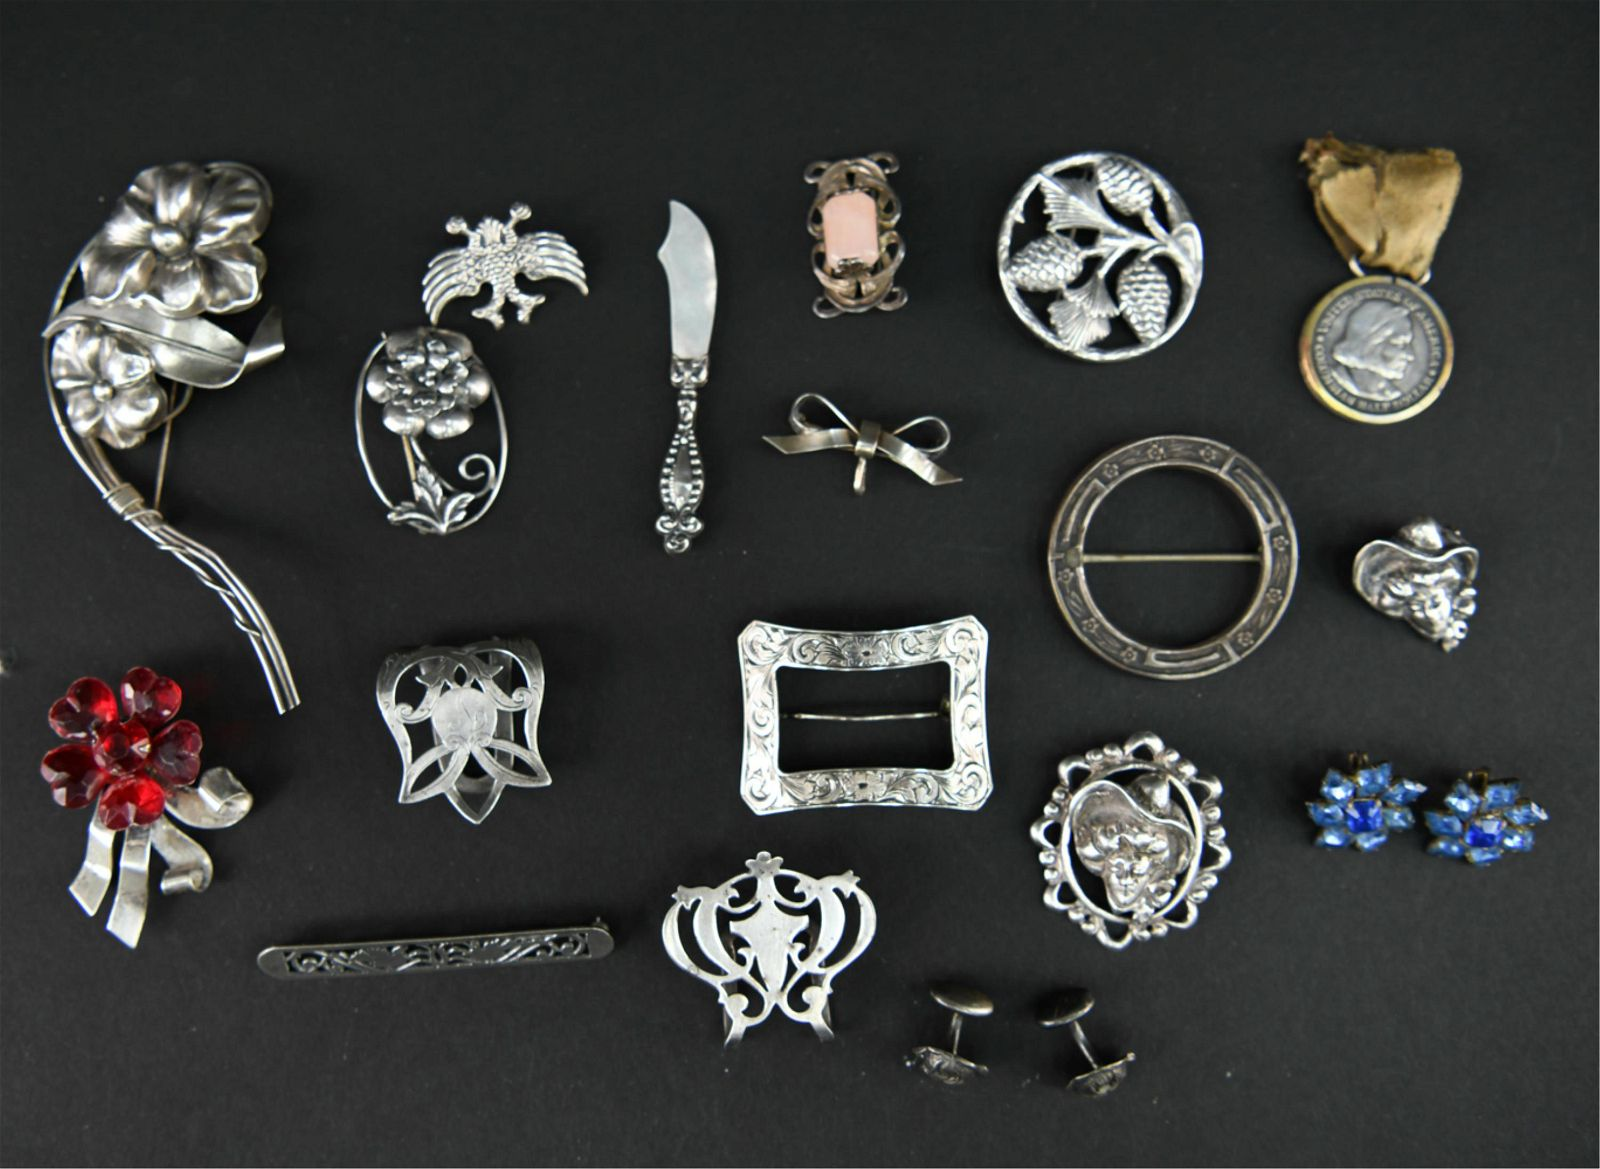 STERLING SILVER JEWELRY GROUPING INCL VINTAGE